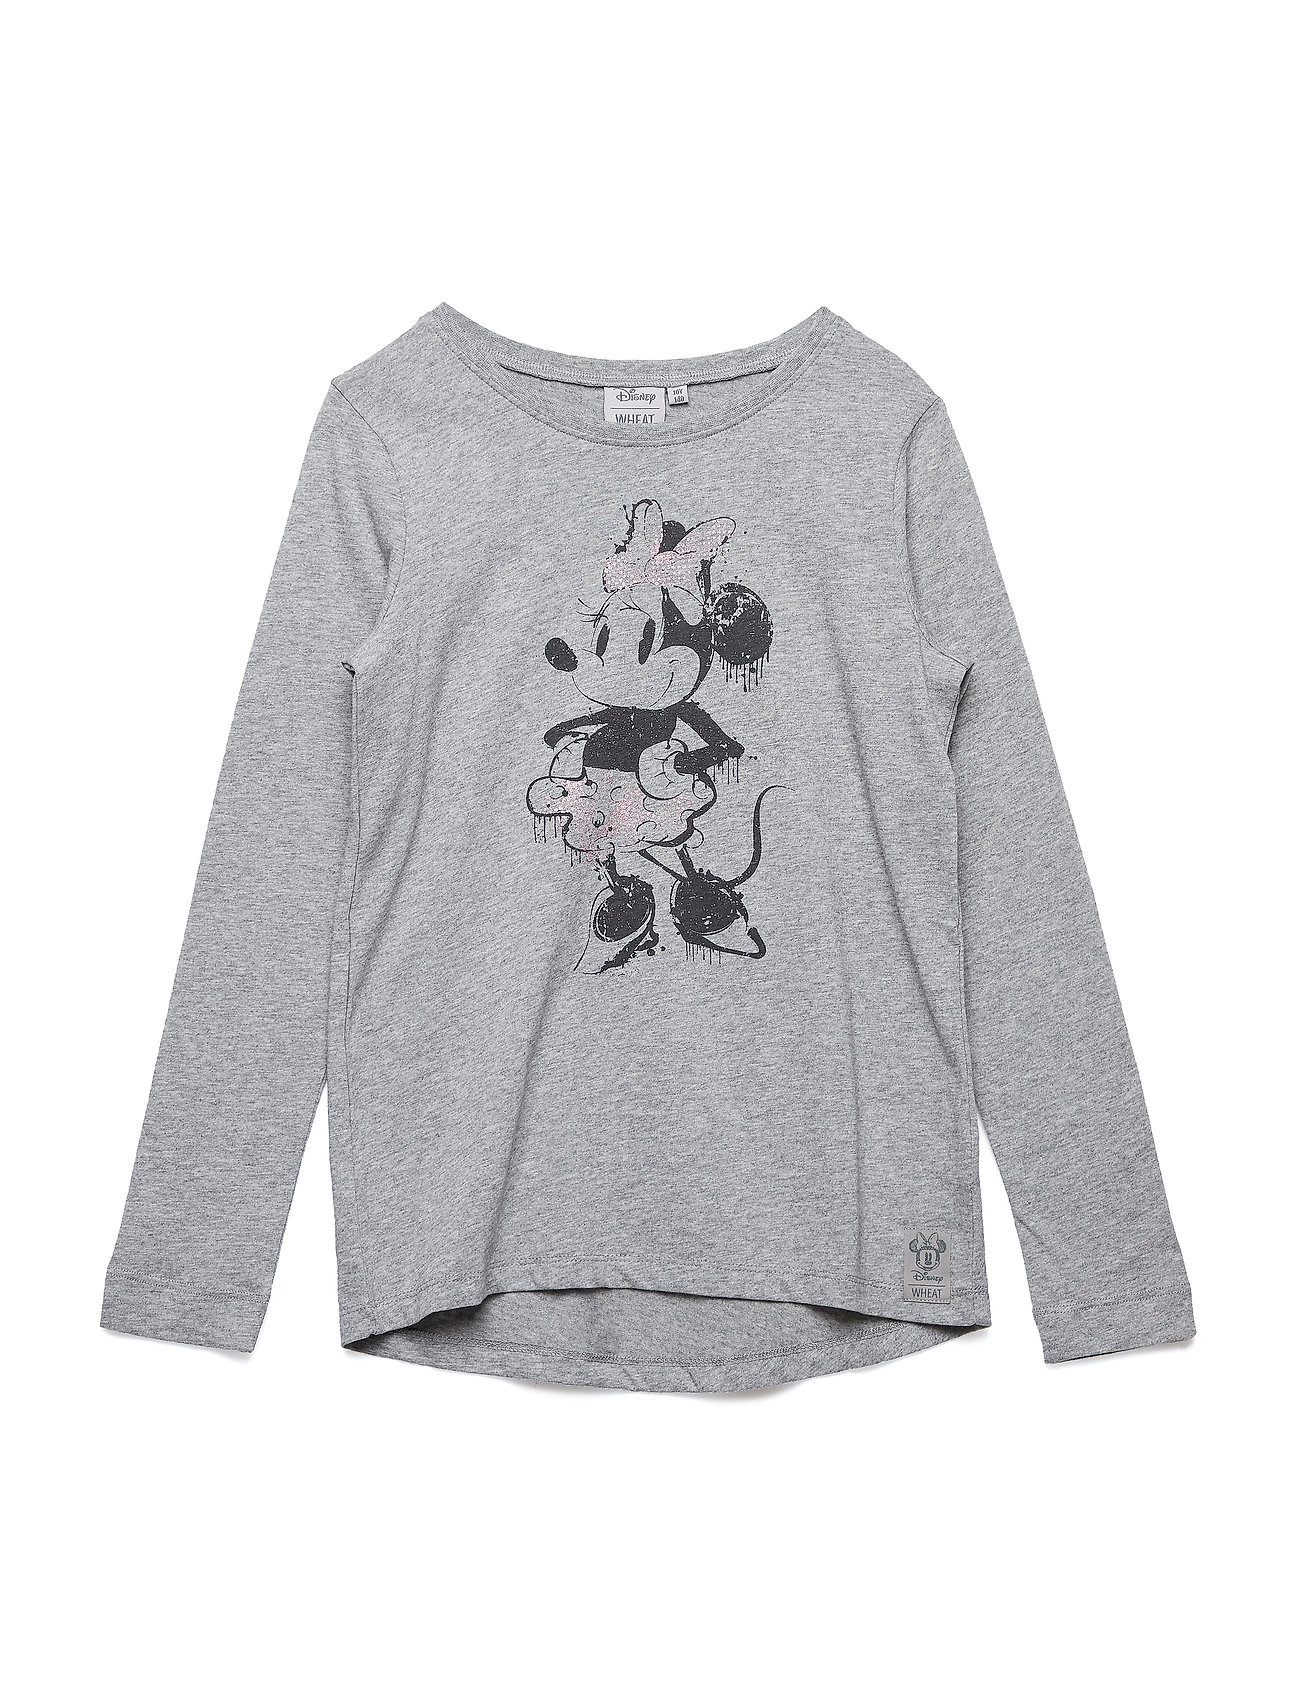 Disney by Wheat T-Shirt Minnie Ink - MELANGE GREY